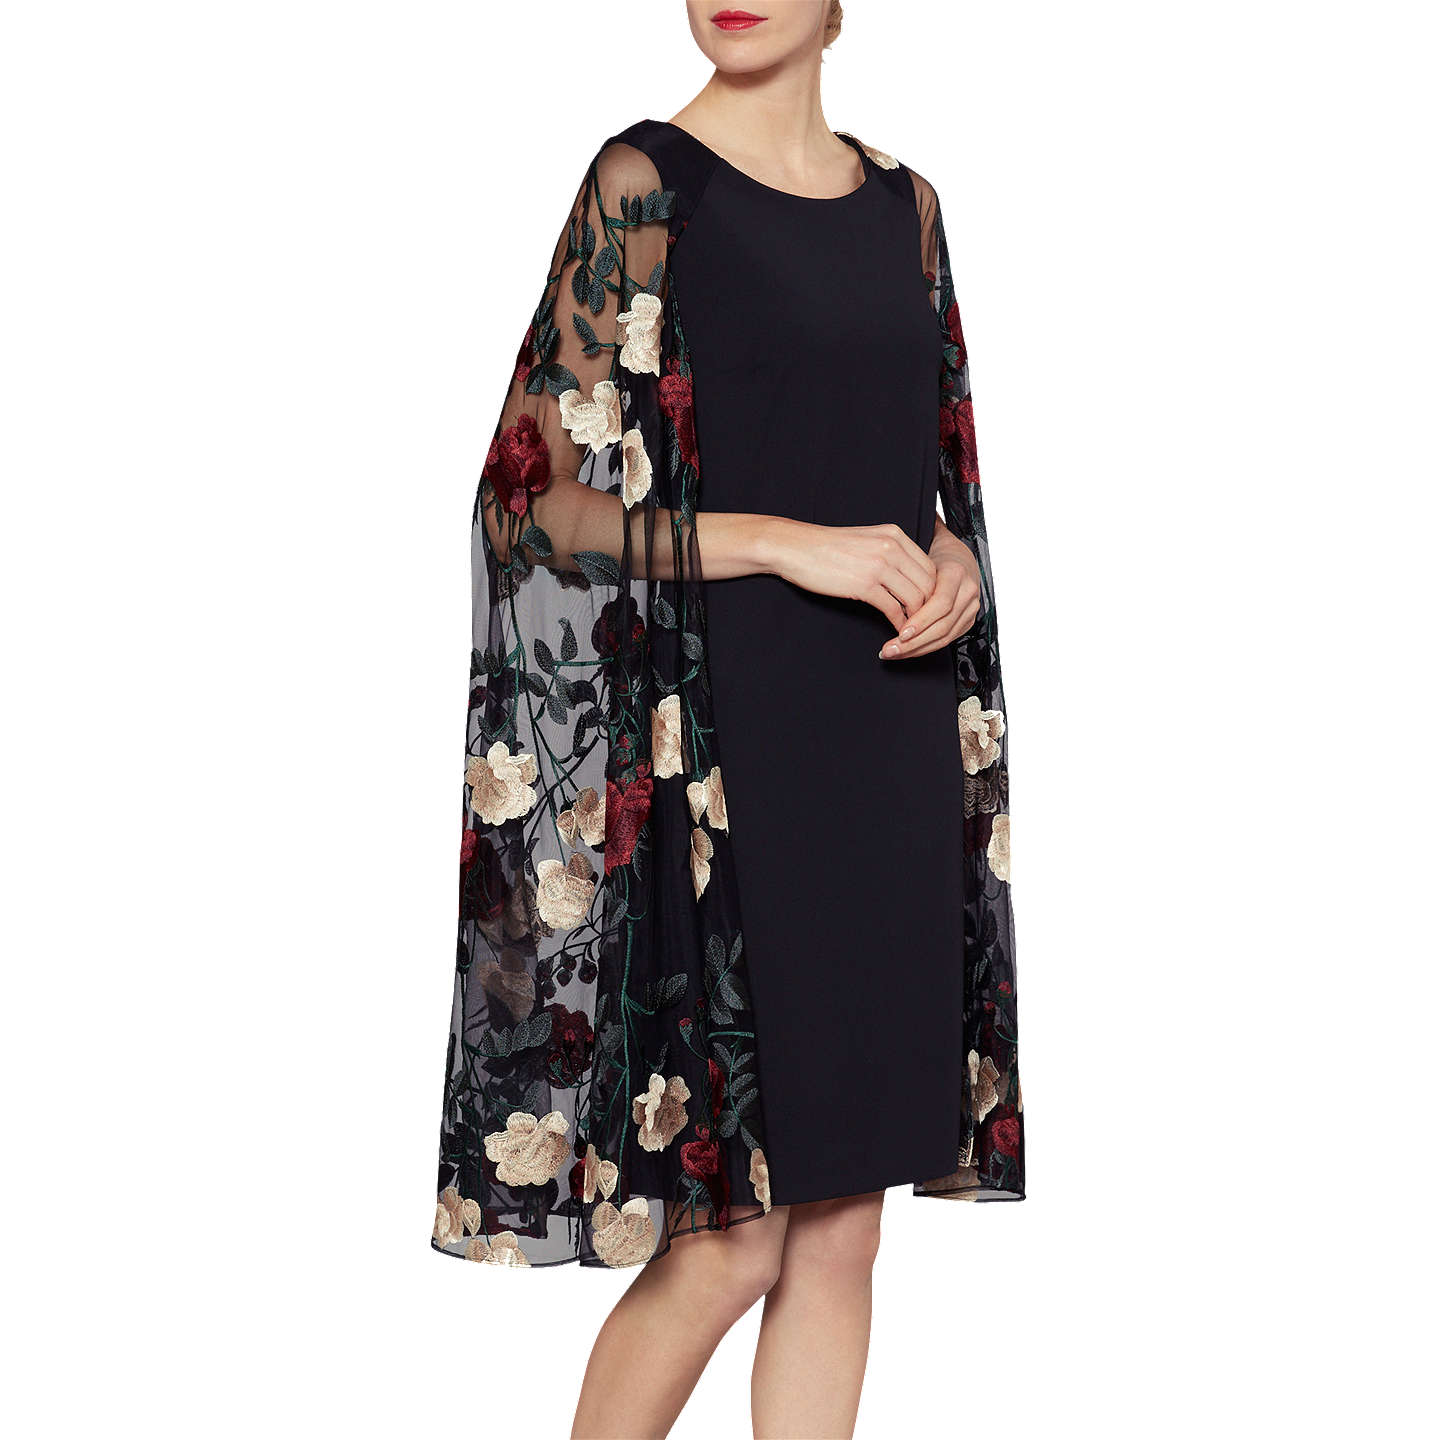 BuyGina Bacconi Melissa Embroidered Cape Dress, Black, 8 Online at johnlewis.com